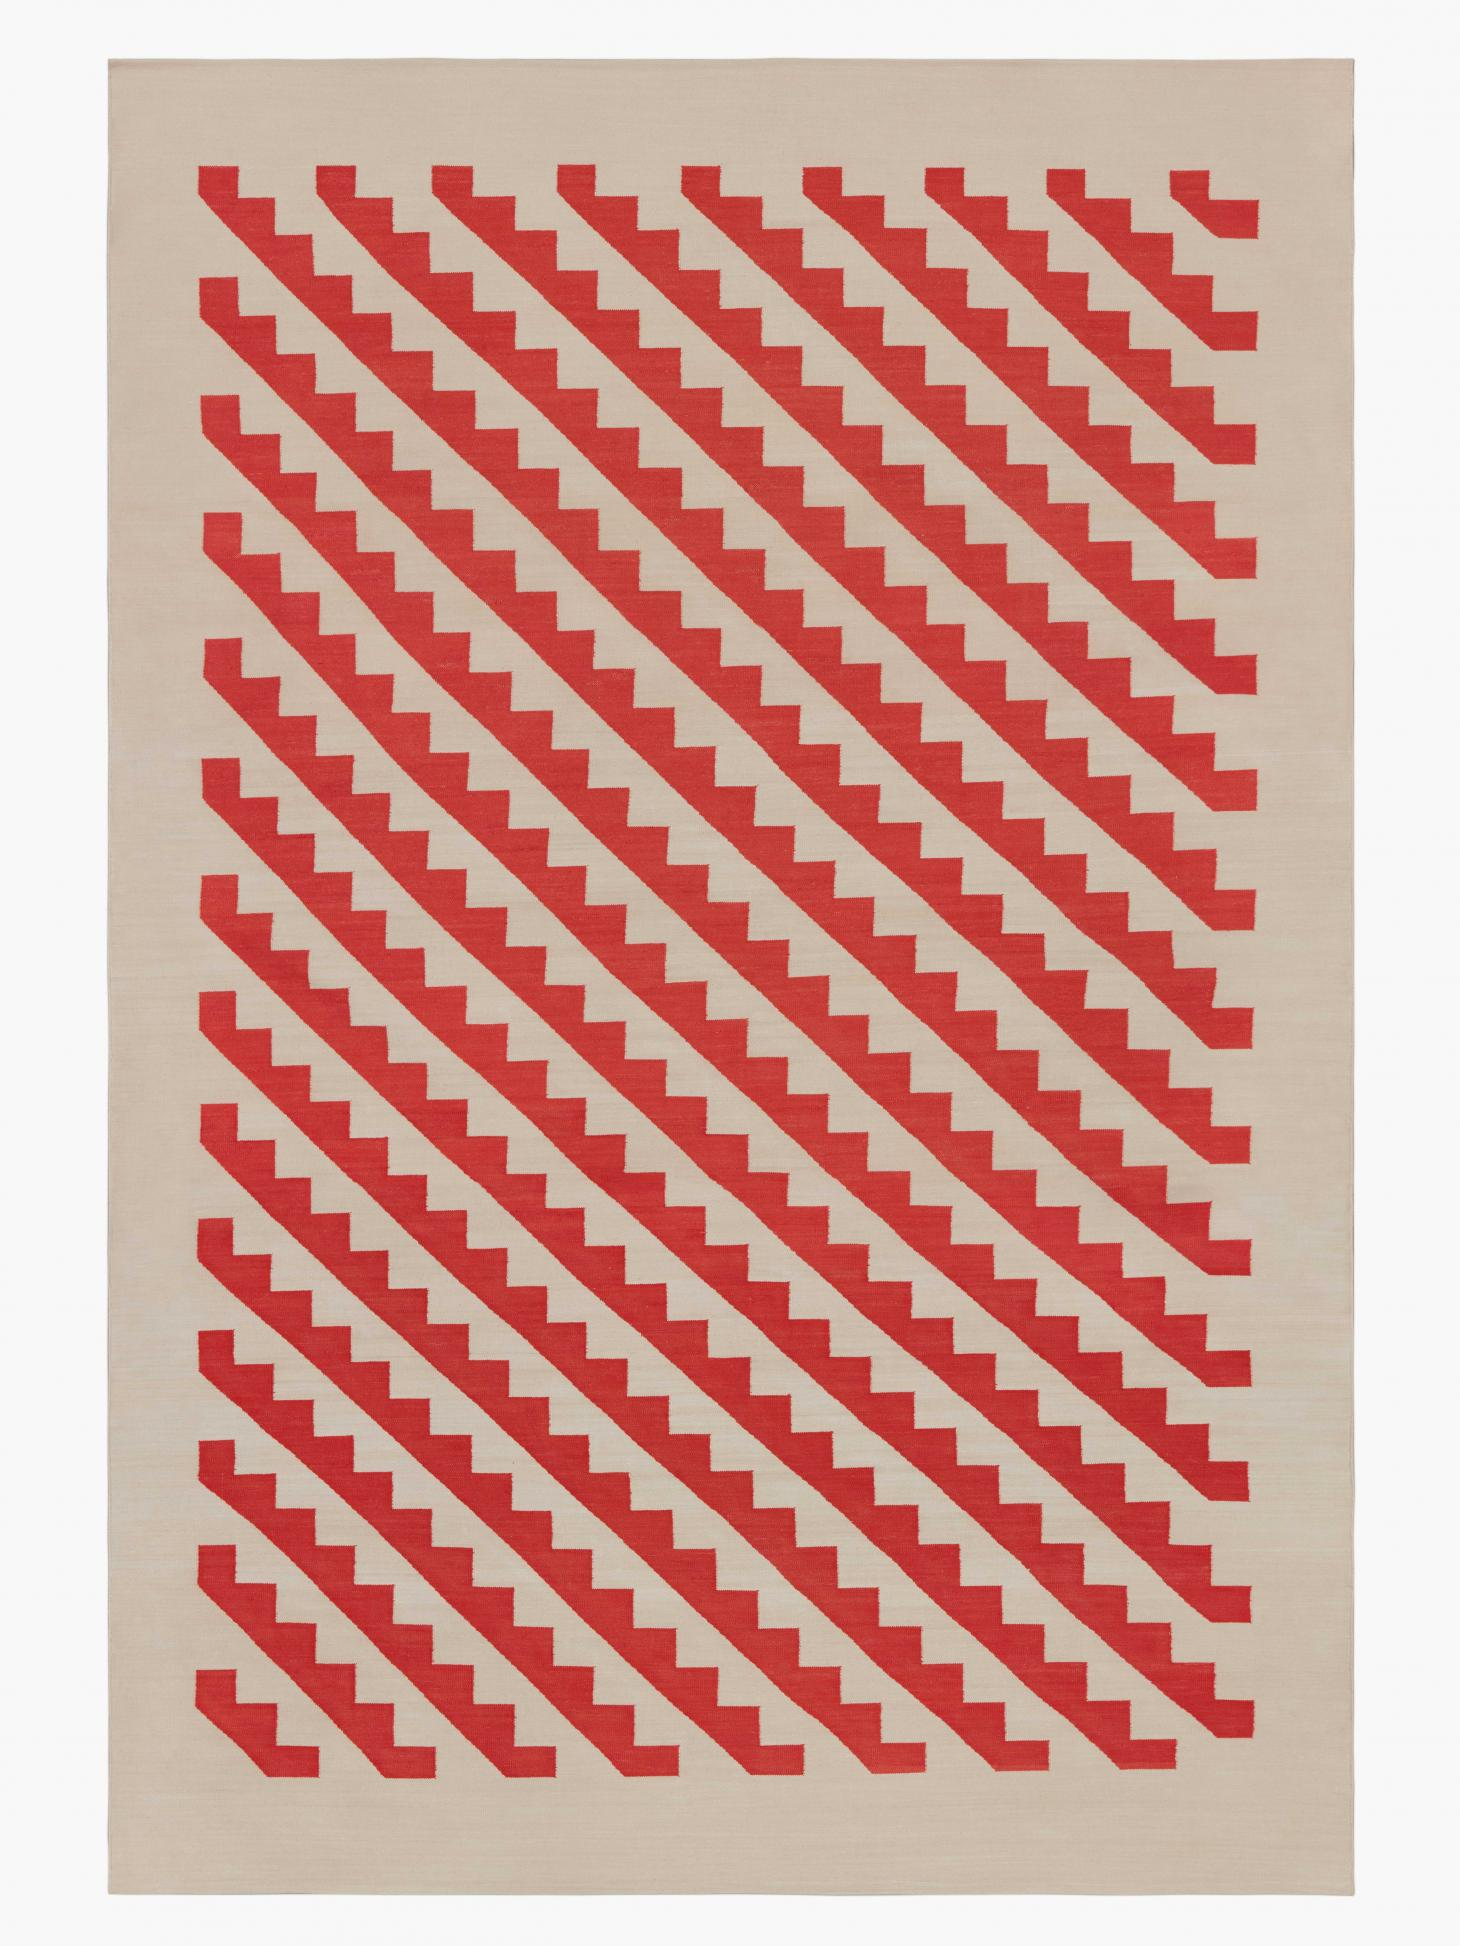 Steps, 1960, by Alexander Girard